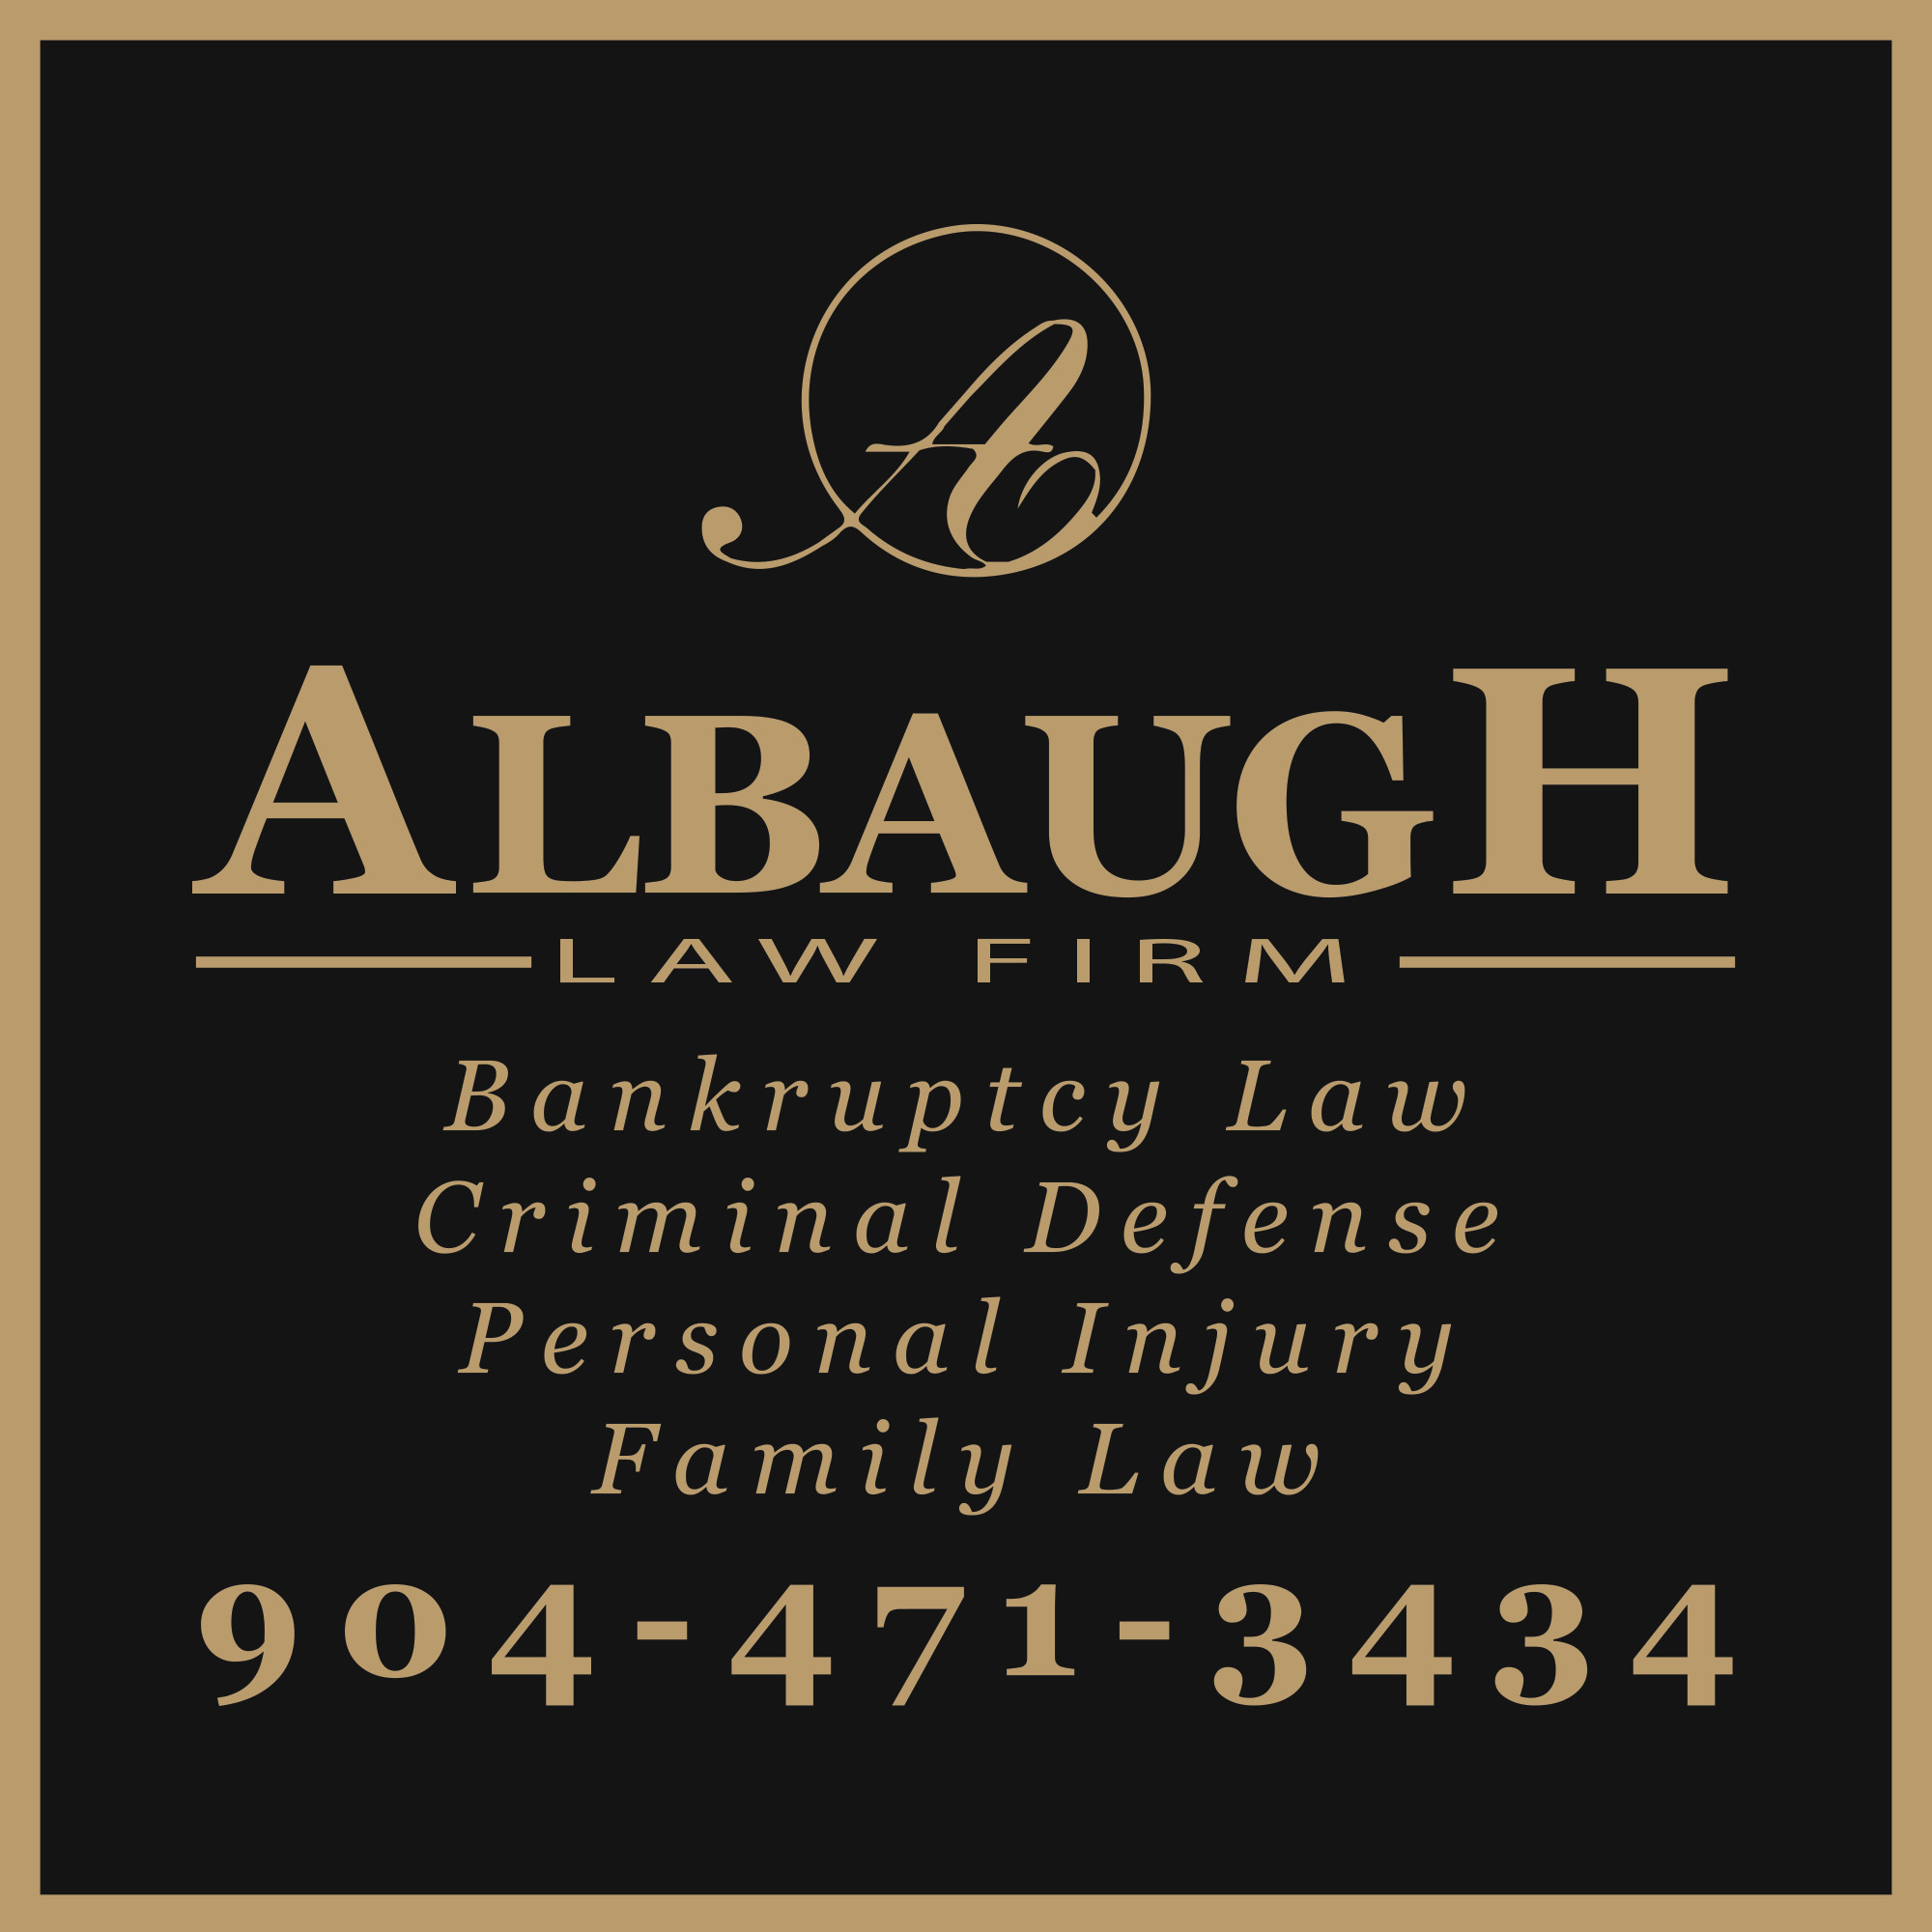 Albaugh Law Firm Square Logo V1